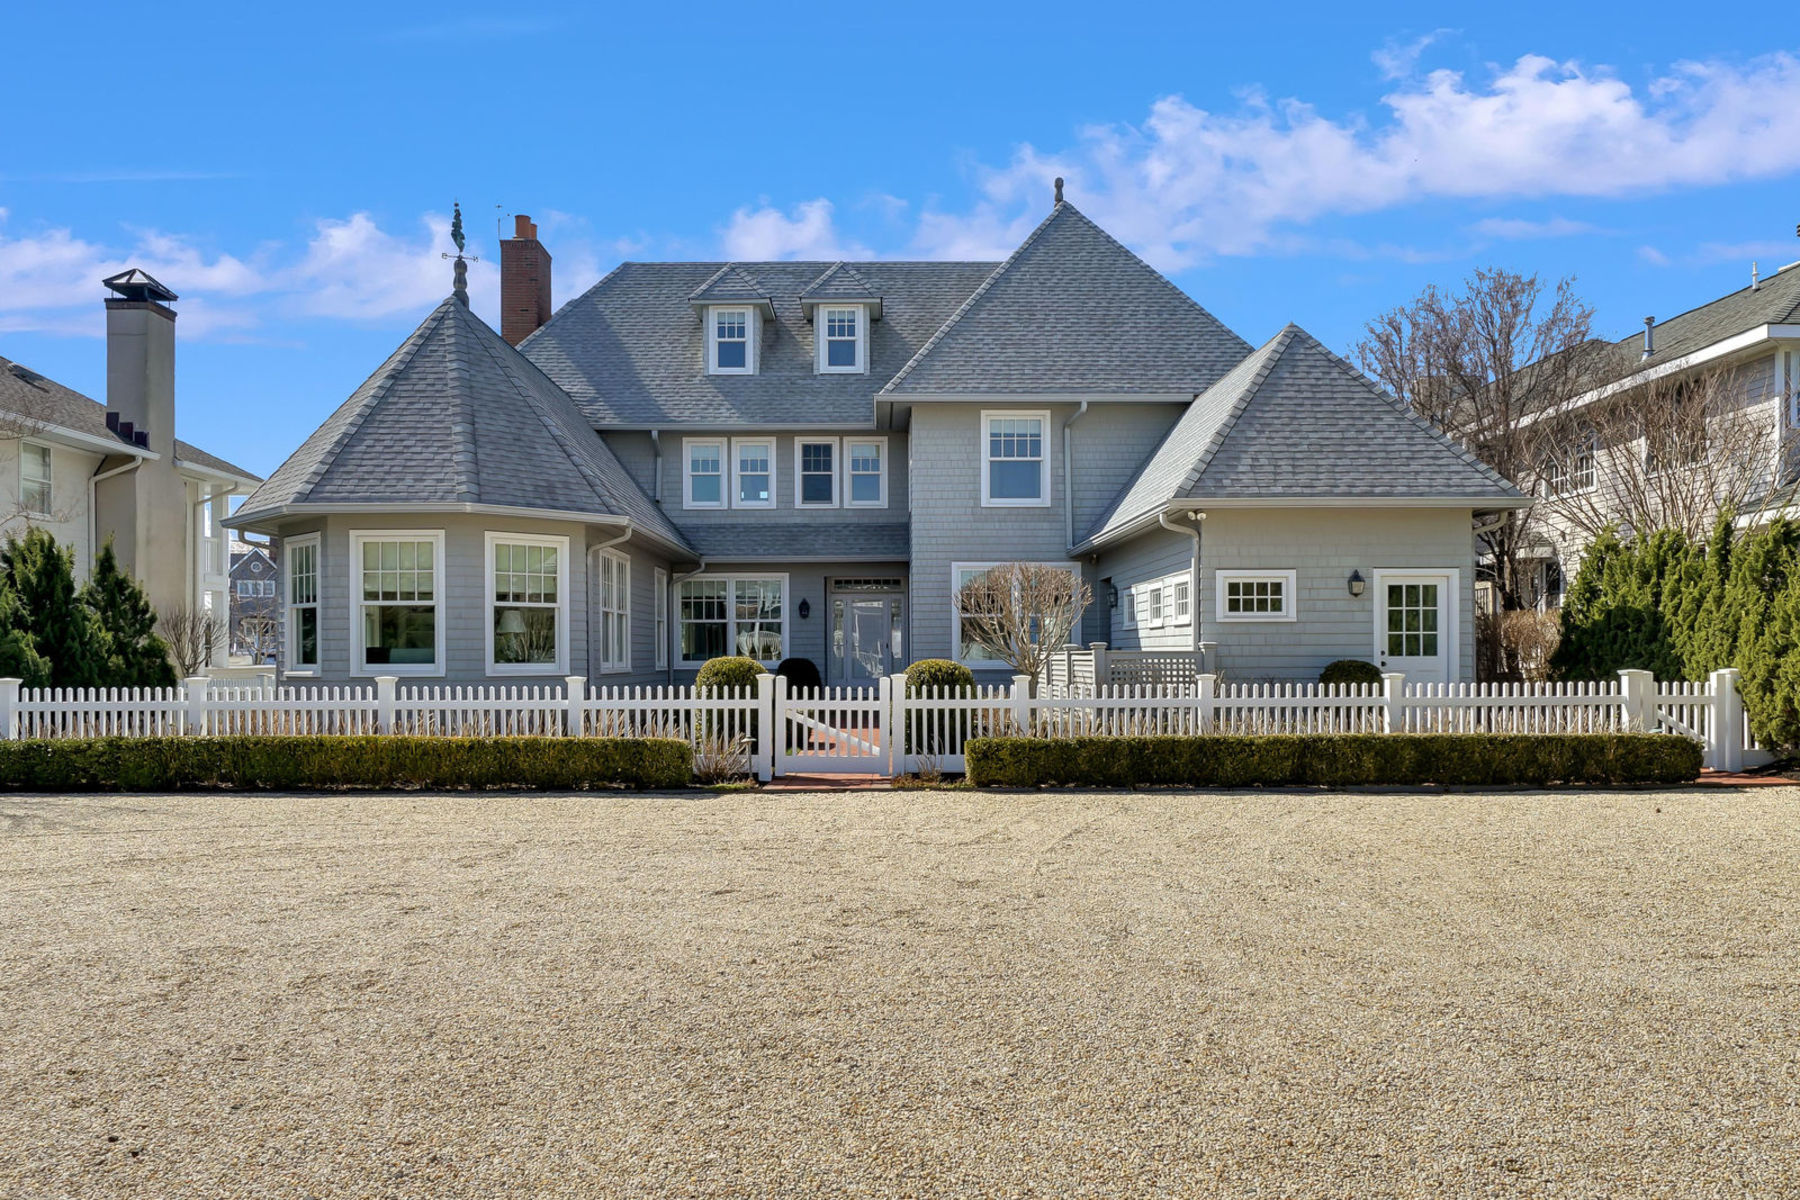 独户住宅 为 销售 在 Exquisitely Appointed Lagoon Front Home Offers Shore Living At It's Finest 950 Barnegat Lane, 洛金, 新泽西州 08738 美国